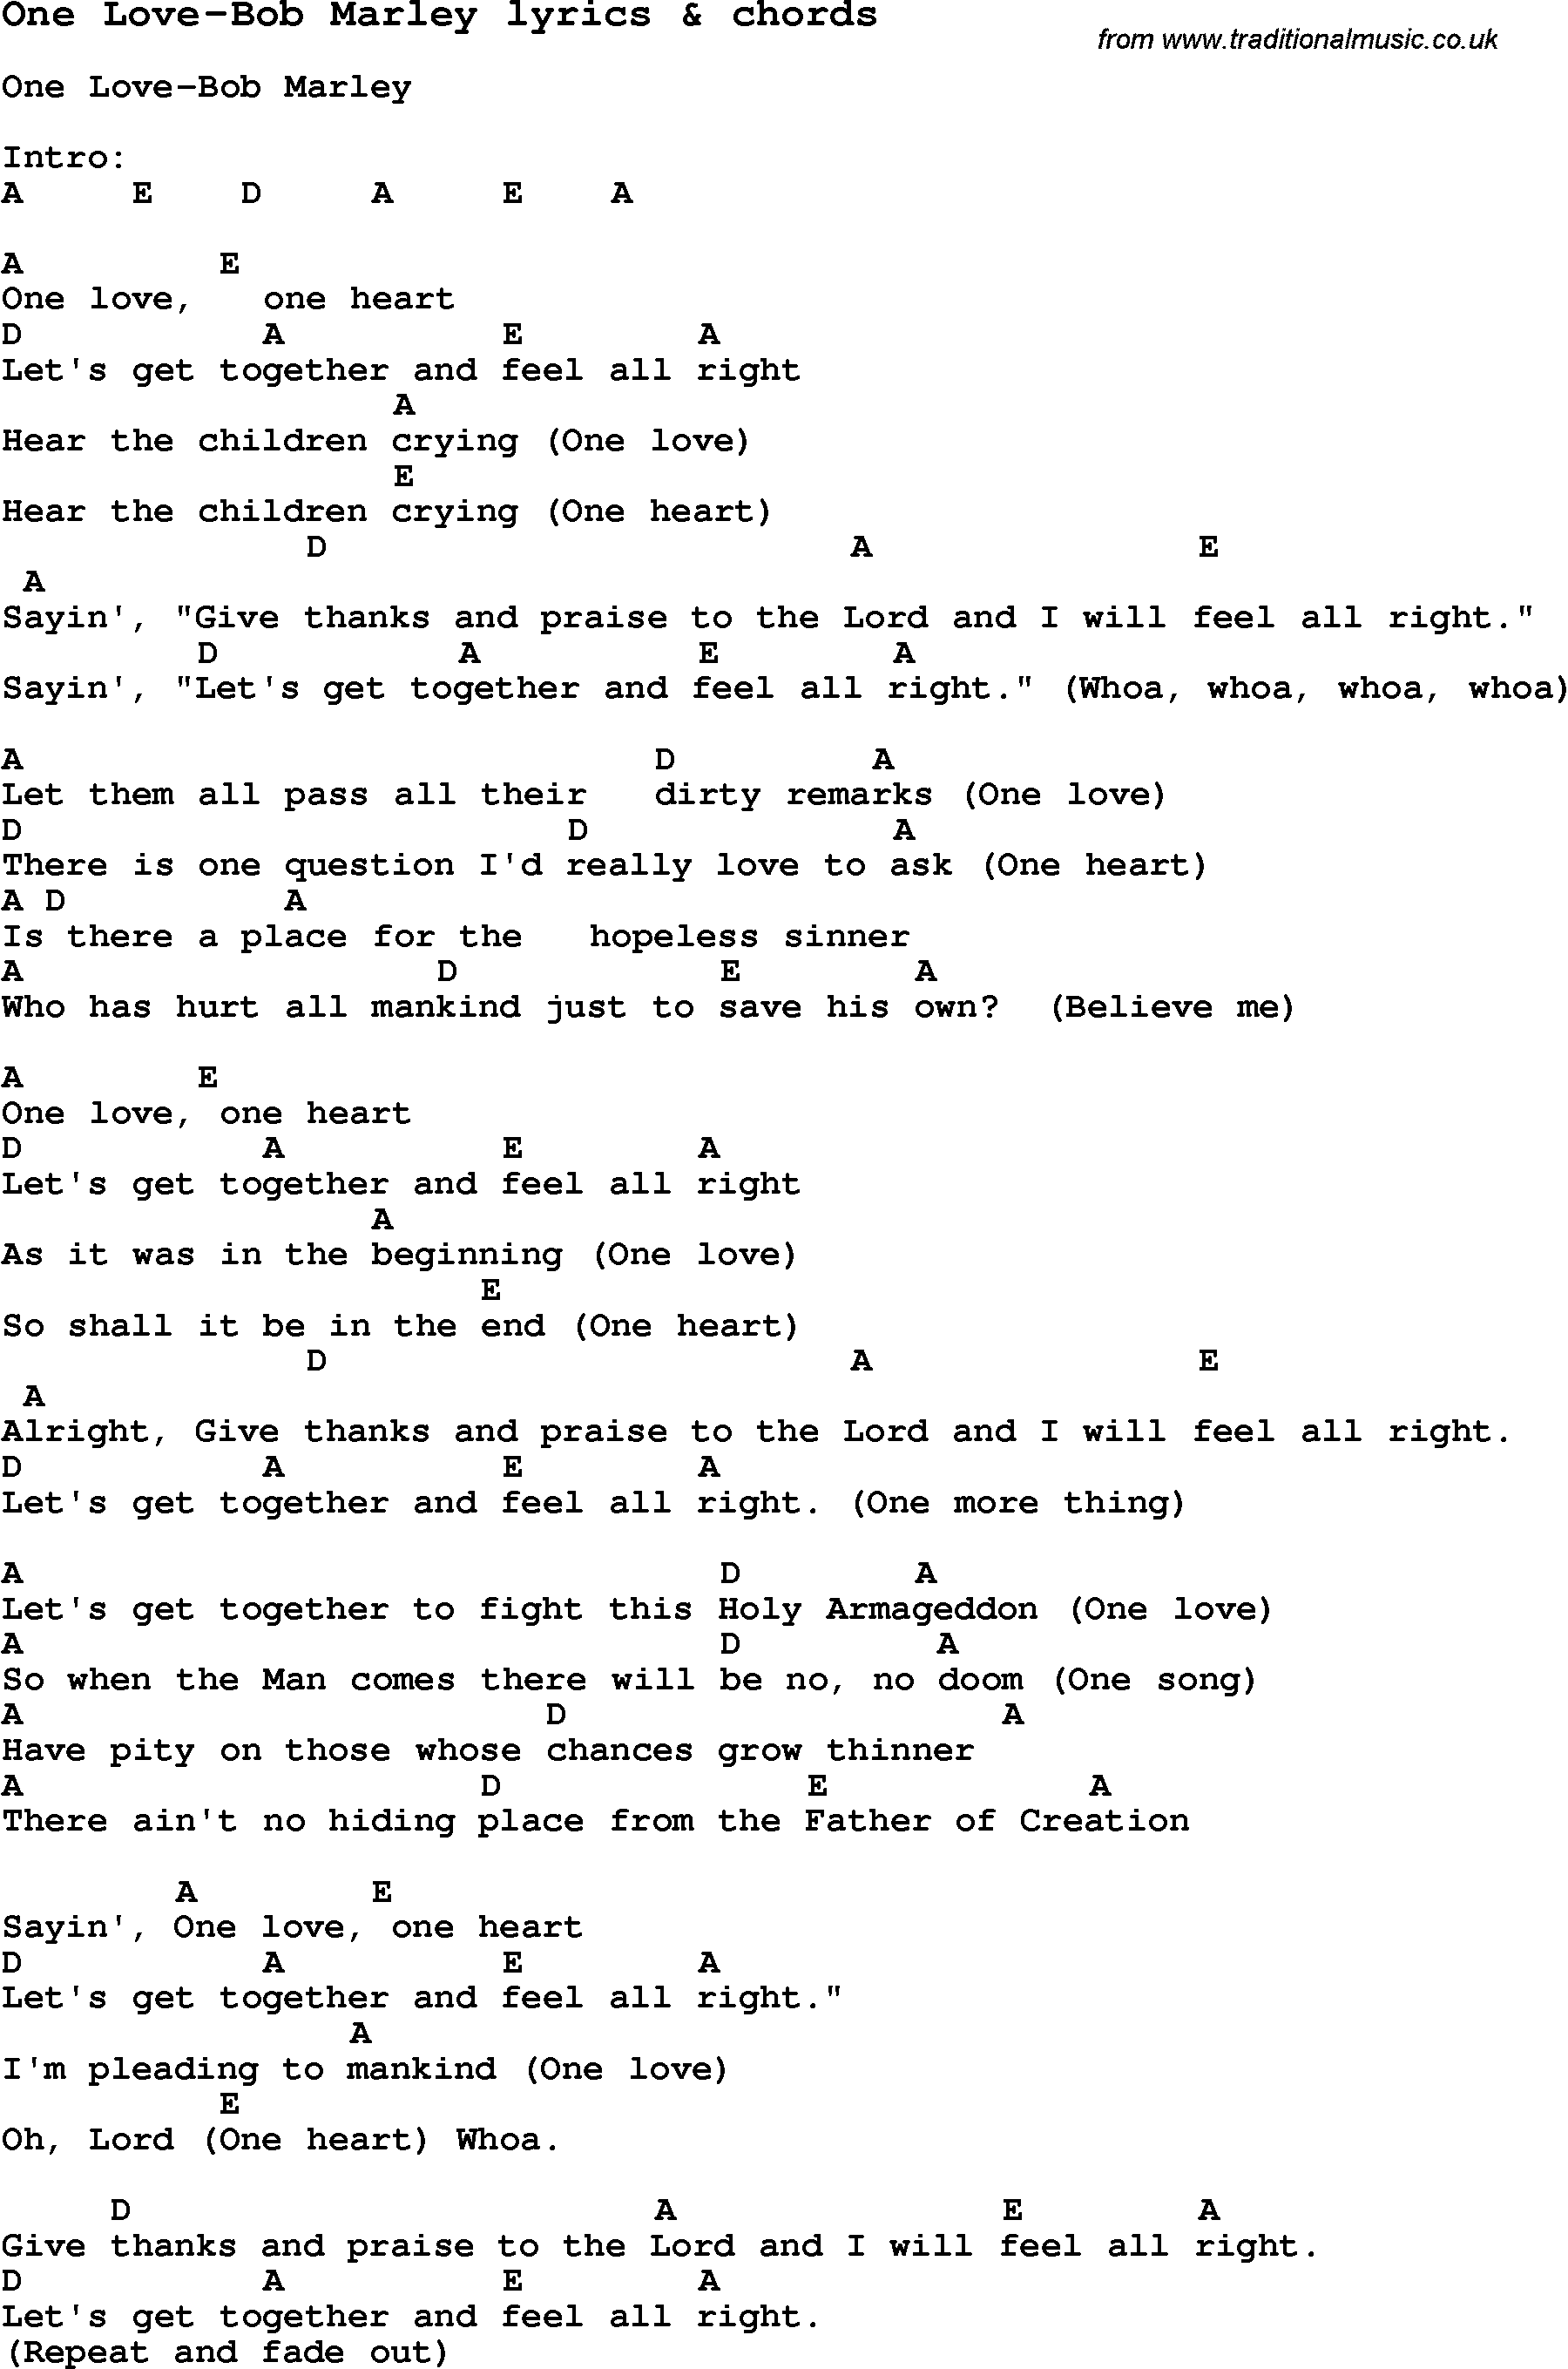 Love song lyrics forone love bob marley with chords love song lyrics for one love bob marley with chords for ukulele guitar hexwebz Gallery